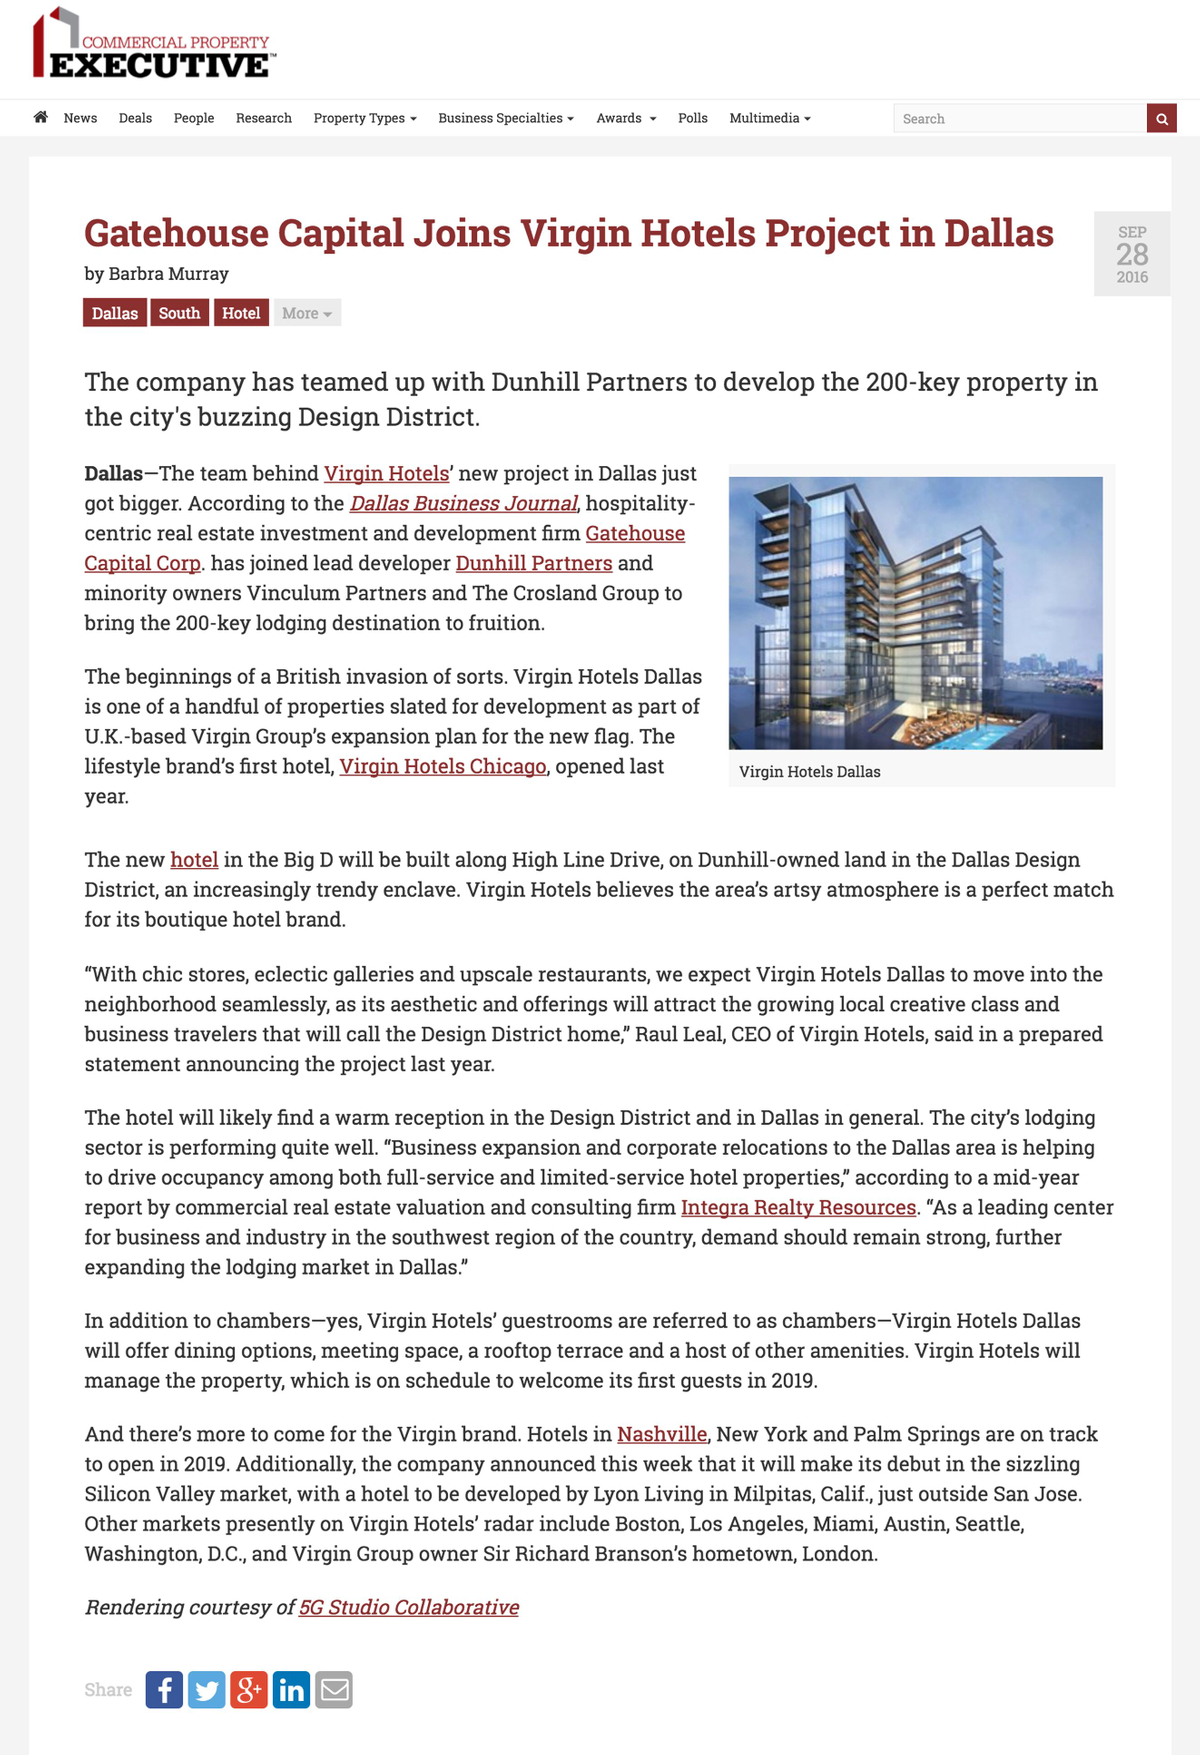 Commercial Property Executive - Virgin Hotels Project in Dallas.jpg